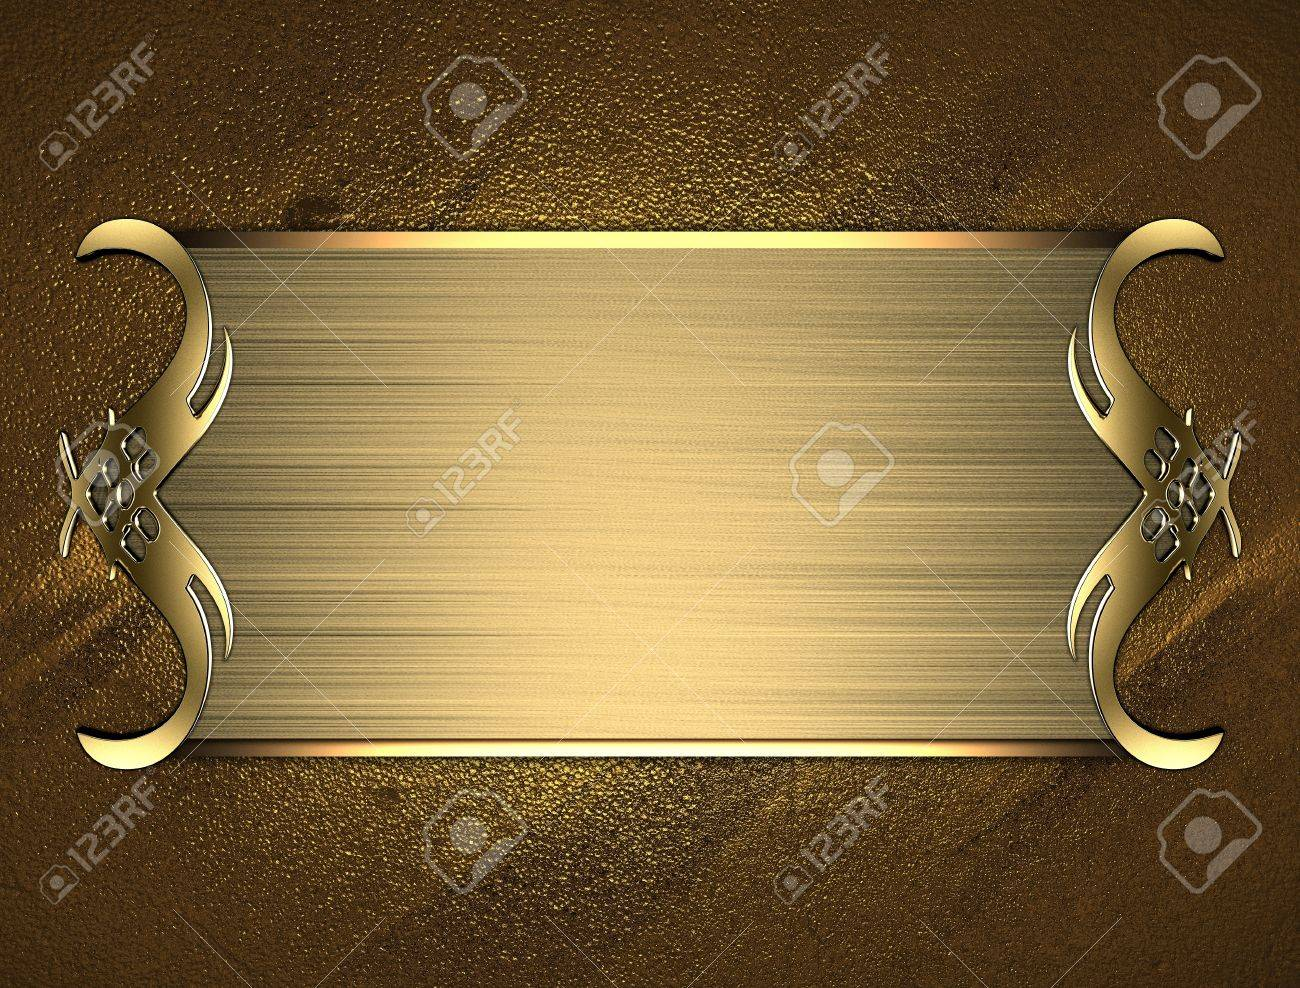 Template for writing. Gold name plate with gold ornate edges, on gold background Stock Photo - 17430768